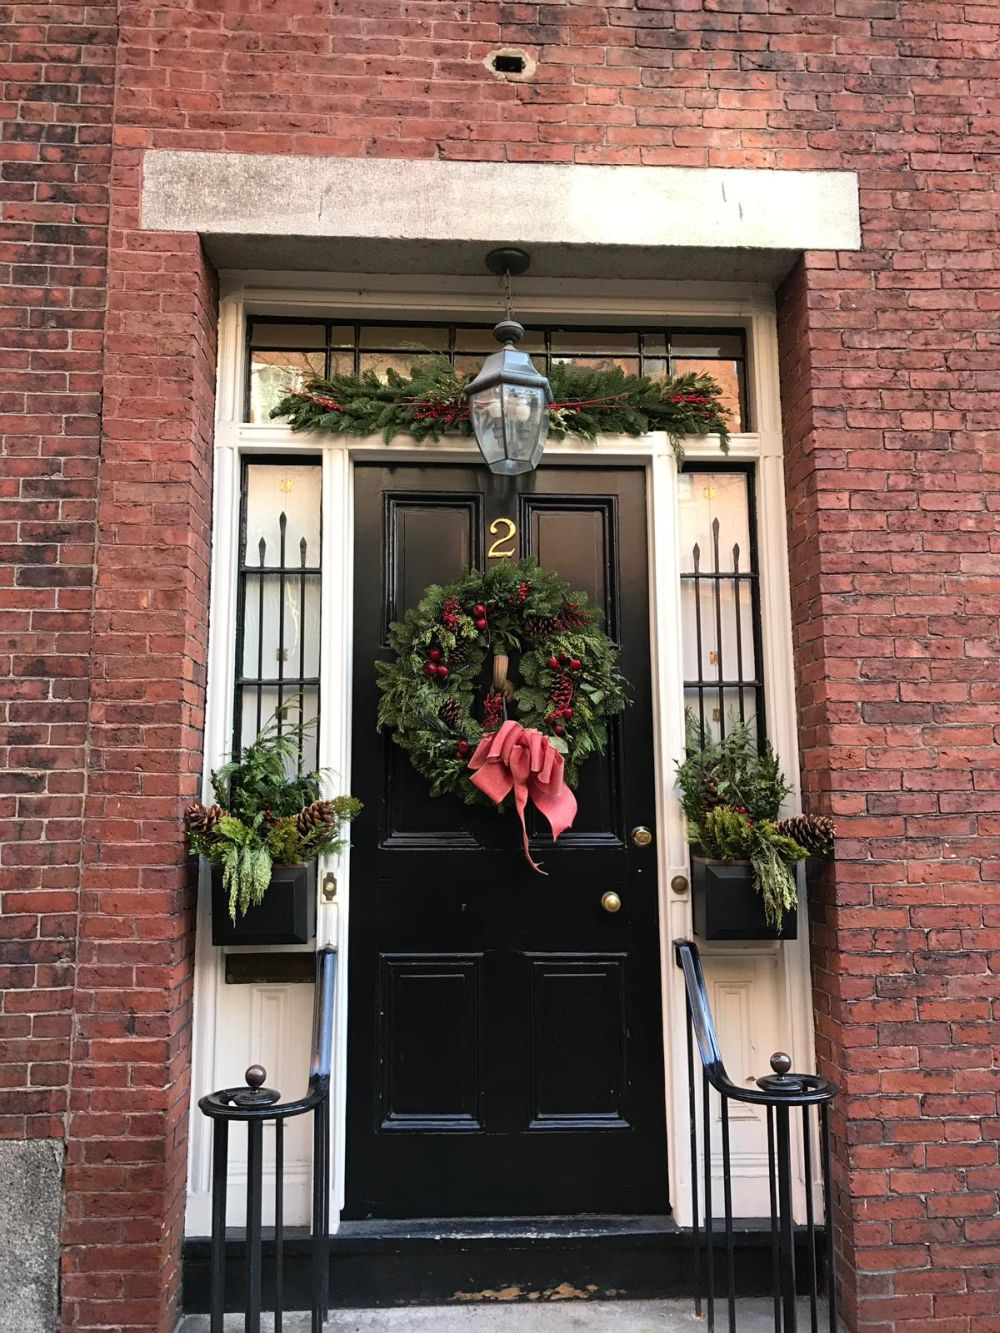 If the setup allows it, you can decorate your front door with more than just a wreath